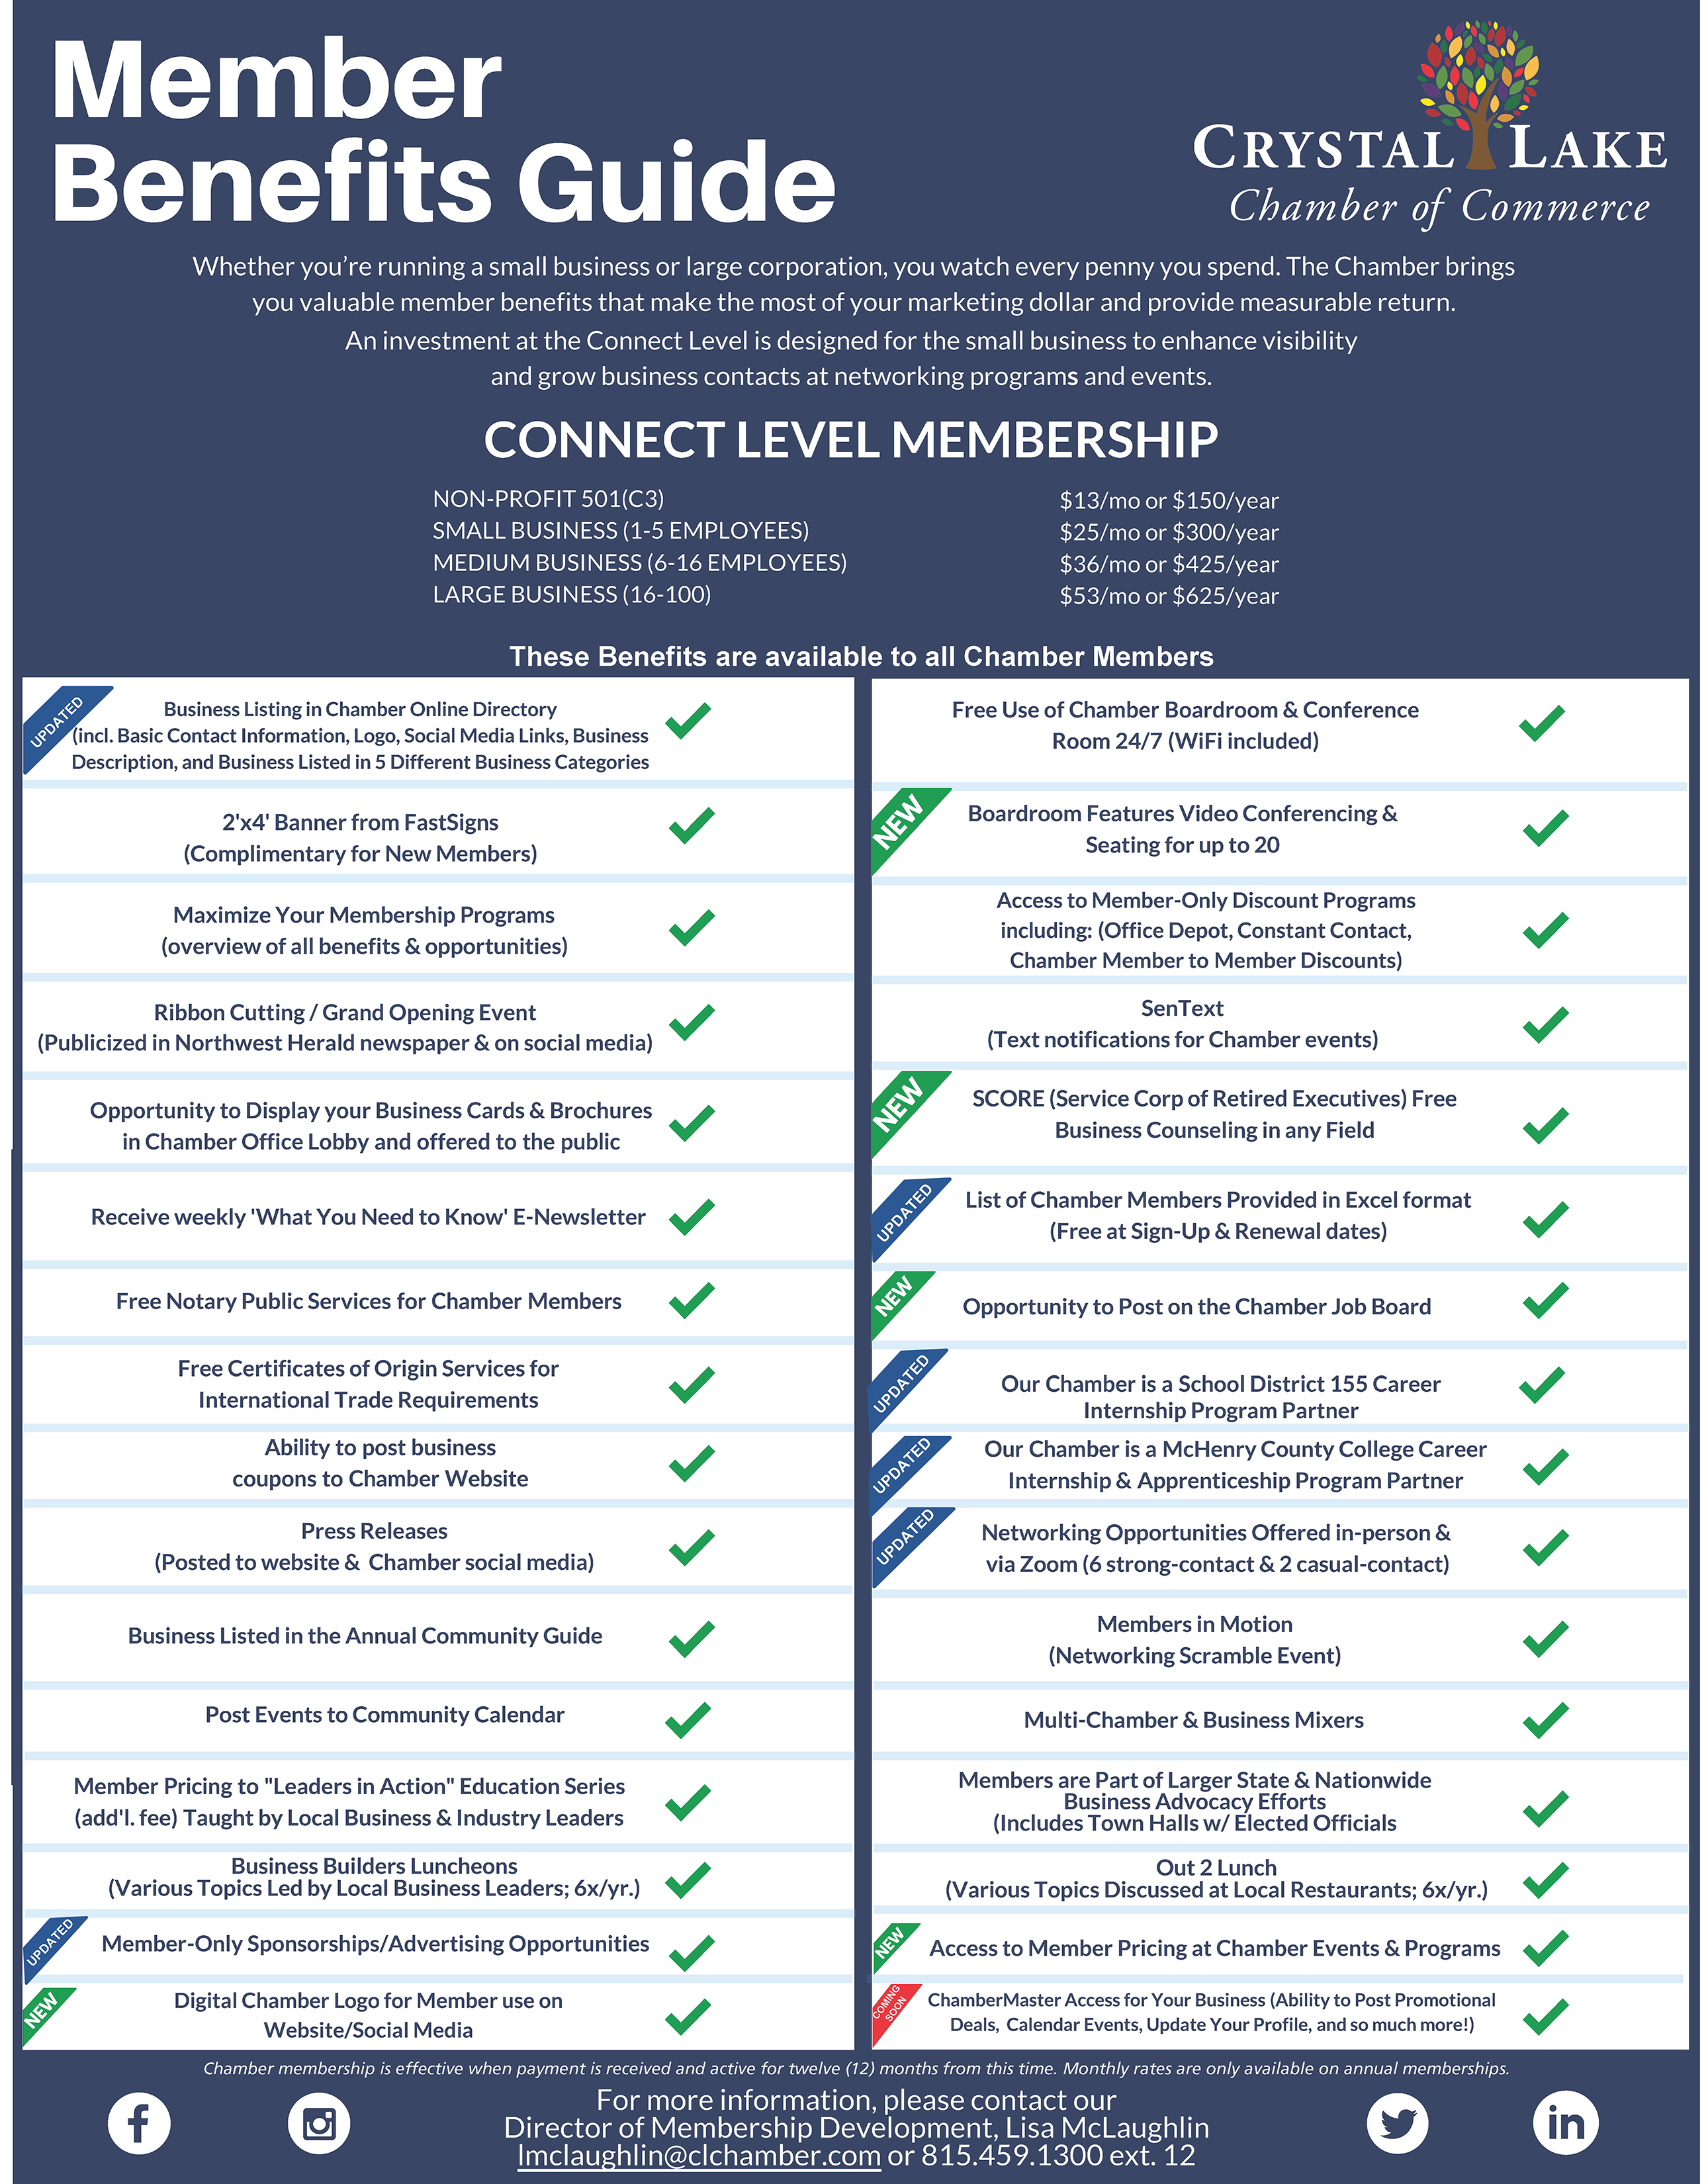 CLCC Membership Benefits Grid 9 2020